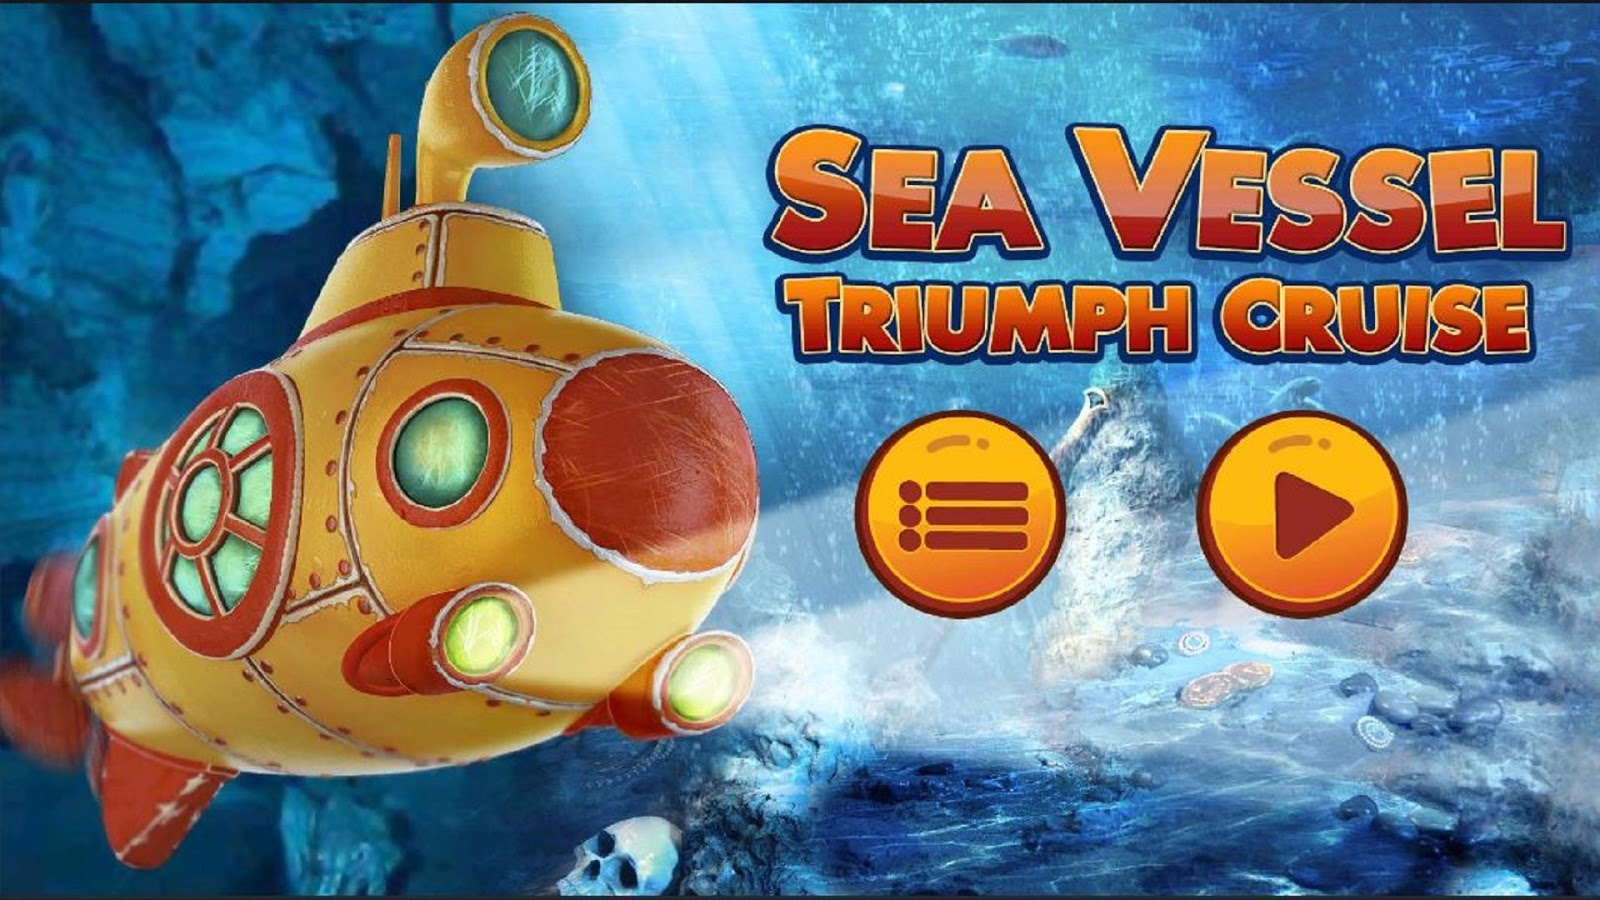 Sea Vessel: Triumph Cruise - screenshot